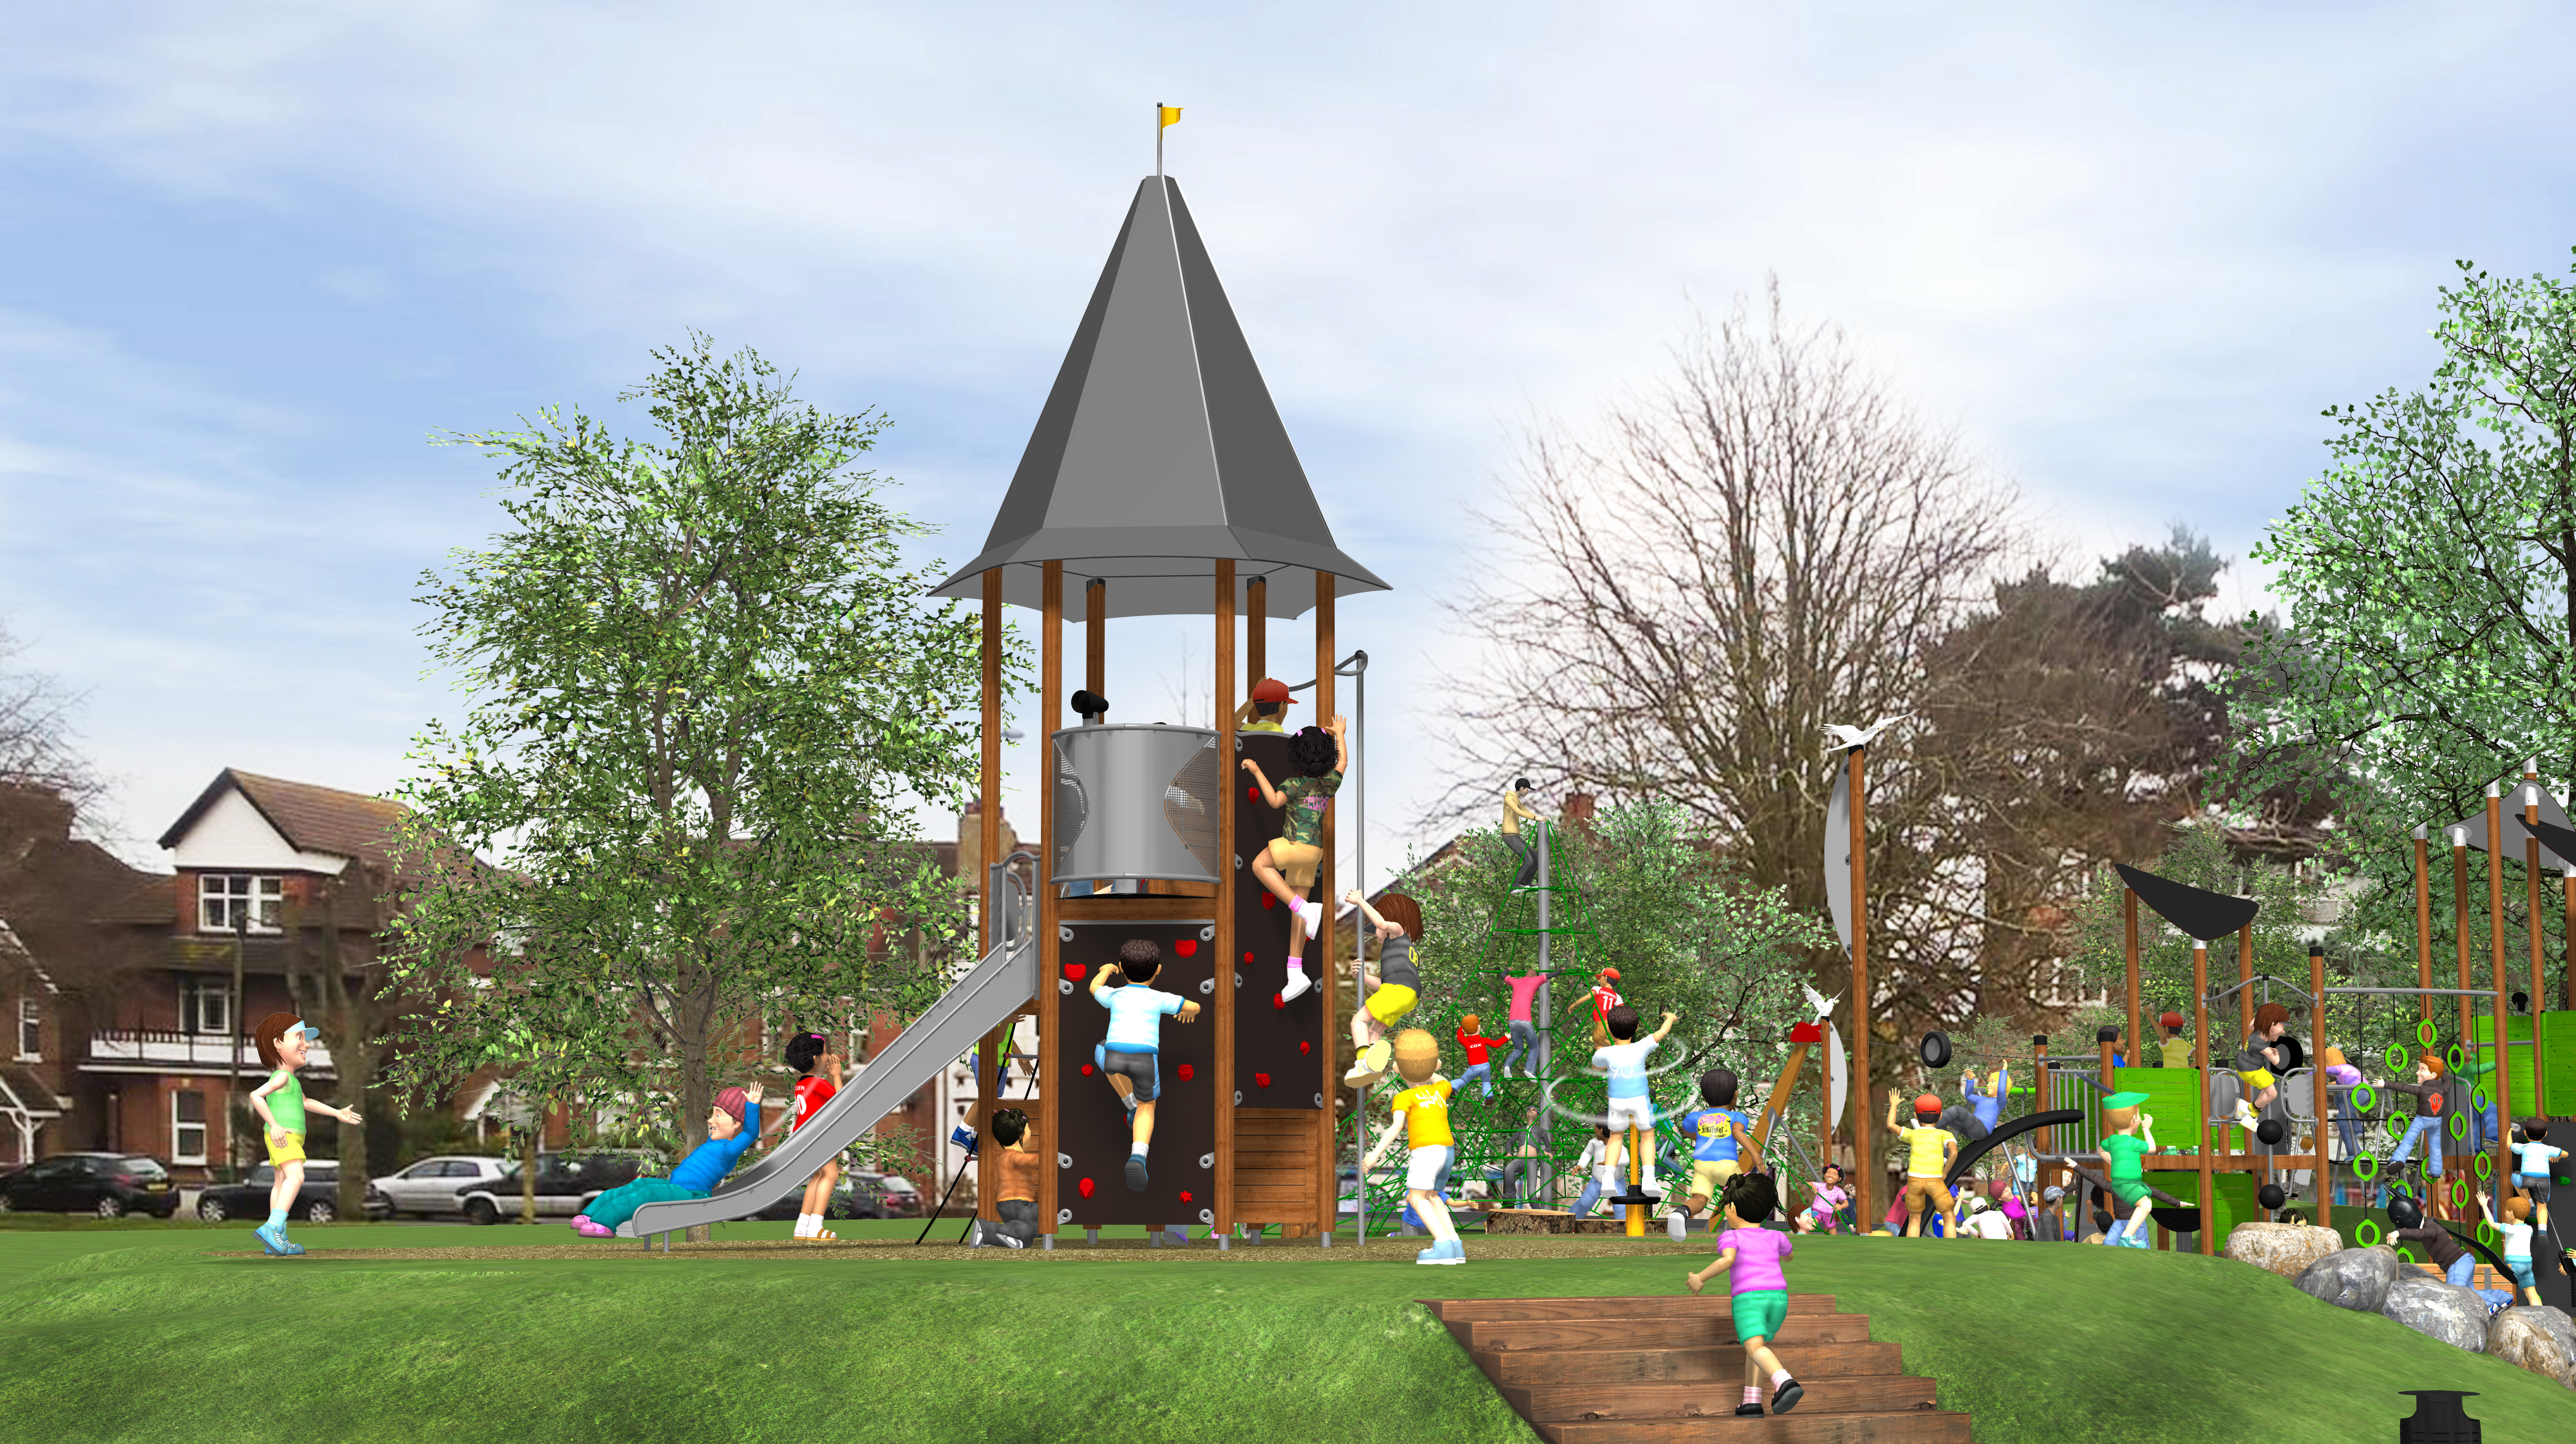 Other Hags Uk Playground Equipment Manufacturer In The Sand And Water Play Recreational Playpower